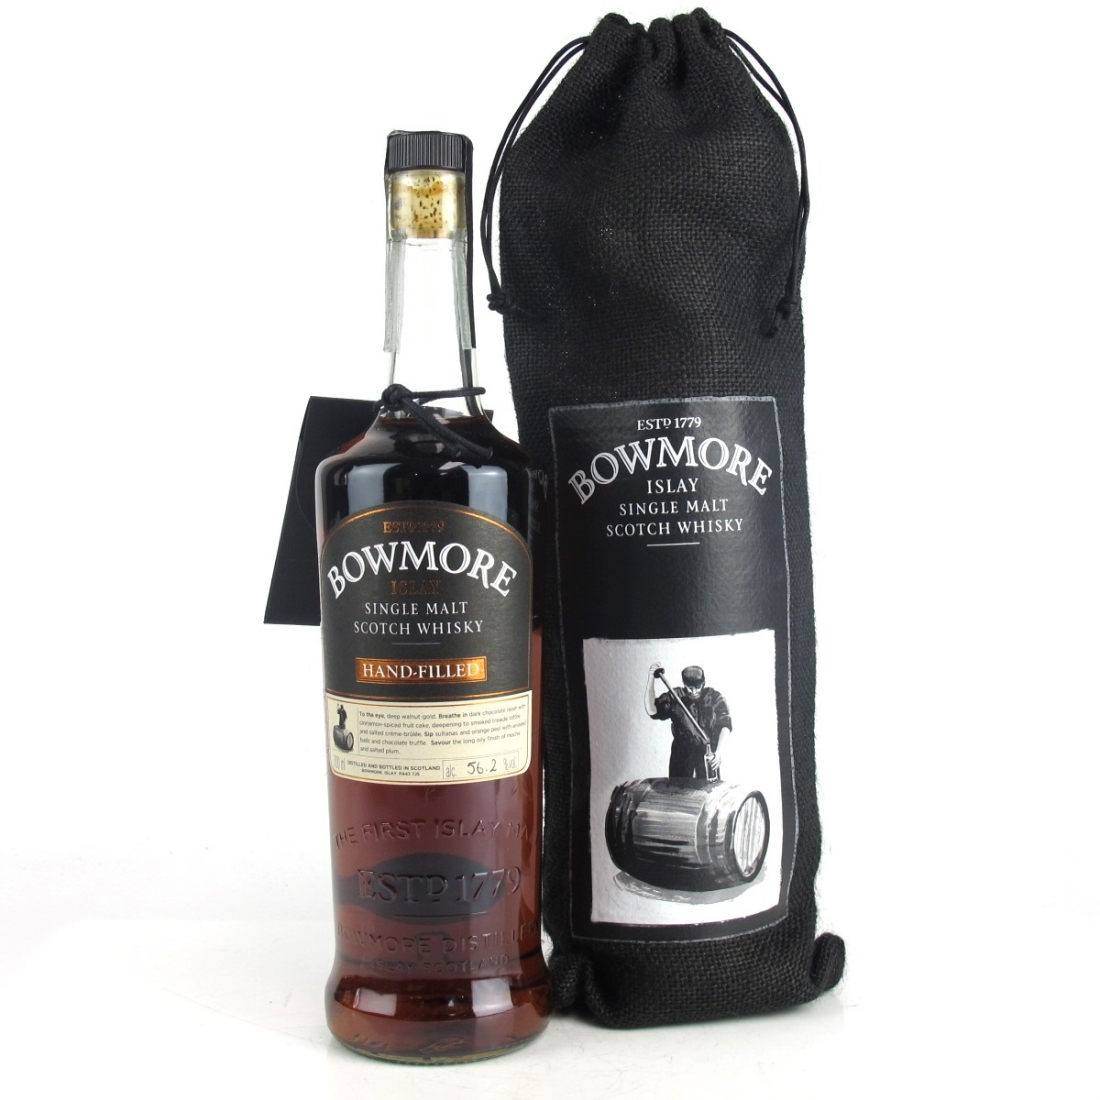 Bowmore 1996 Hand Filled 20 Year Old Cask #2534 / 1st Fill Oloroso Sherry